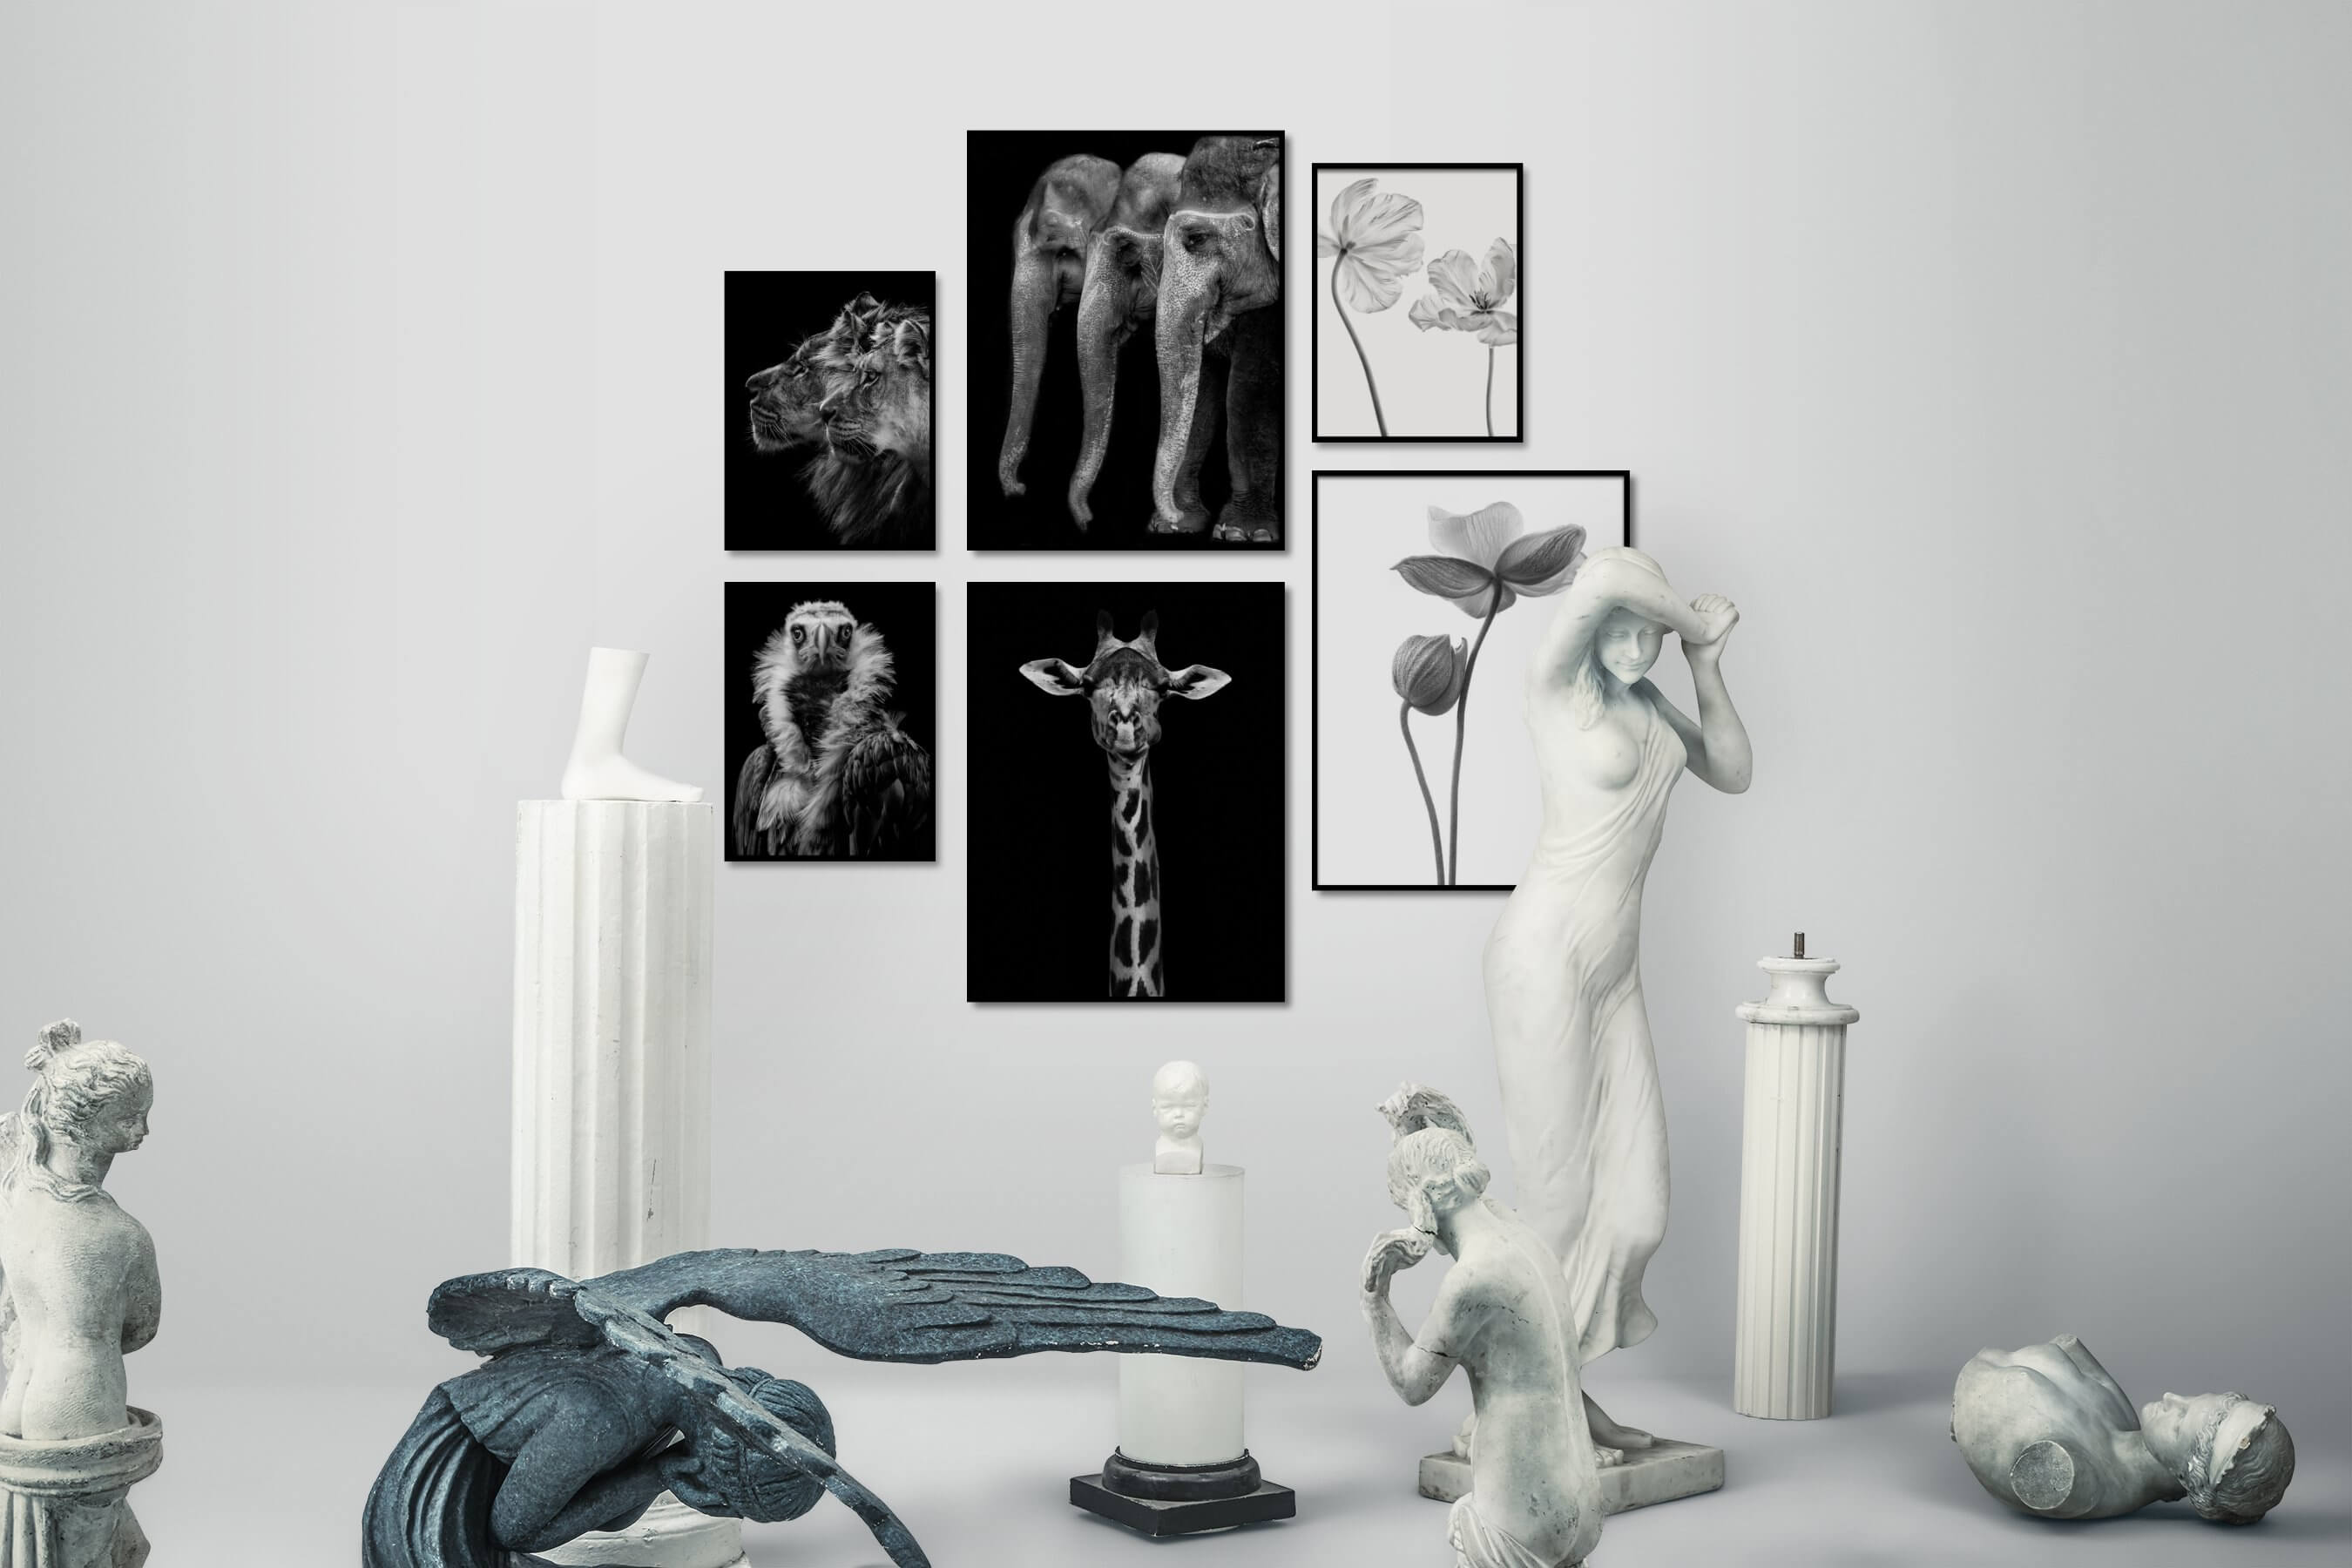 Gallery wall idea with six framed pictures arranged on a wall depicting Black & White, Dark Tones, For the Minimalist, Animals, Bright Tones, Flowers & Plants, Mindfulness, and Vintage